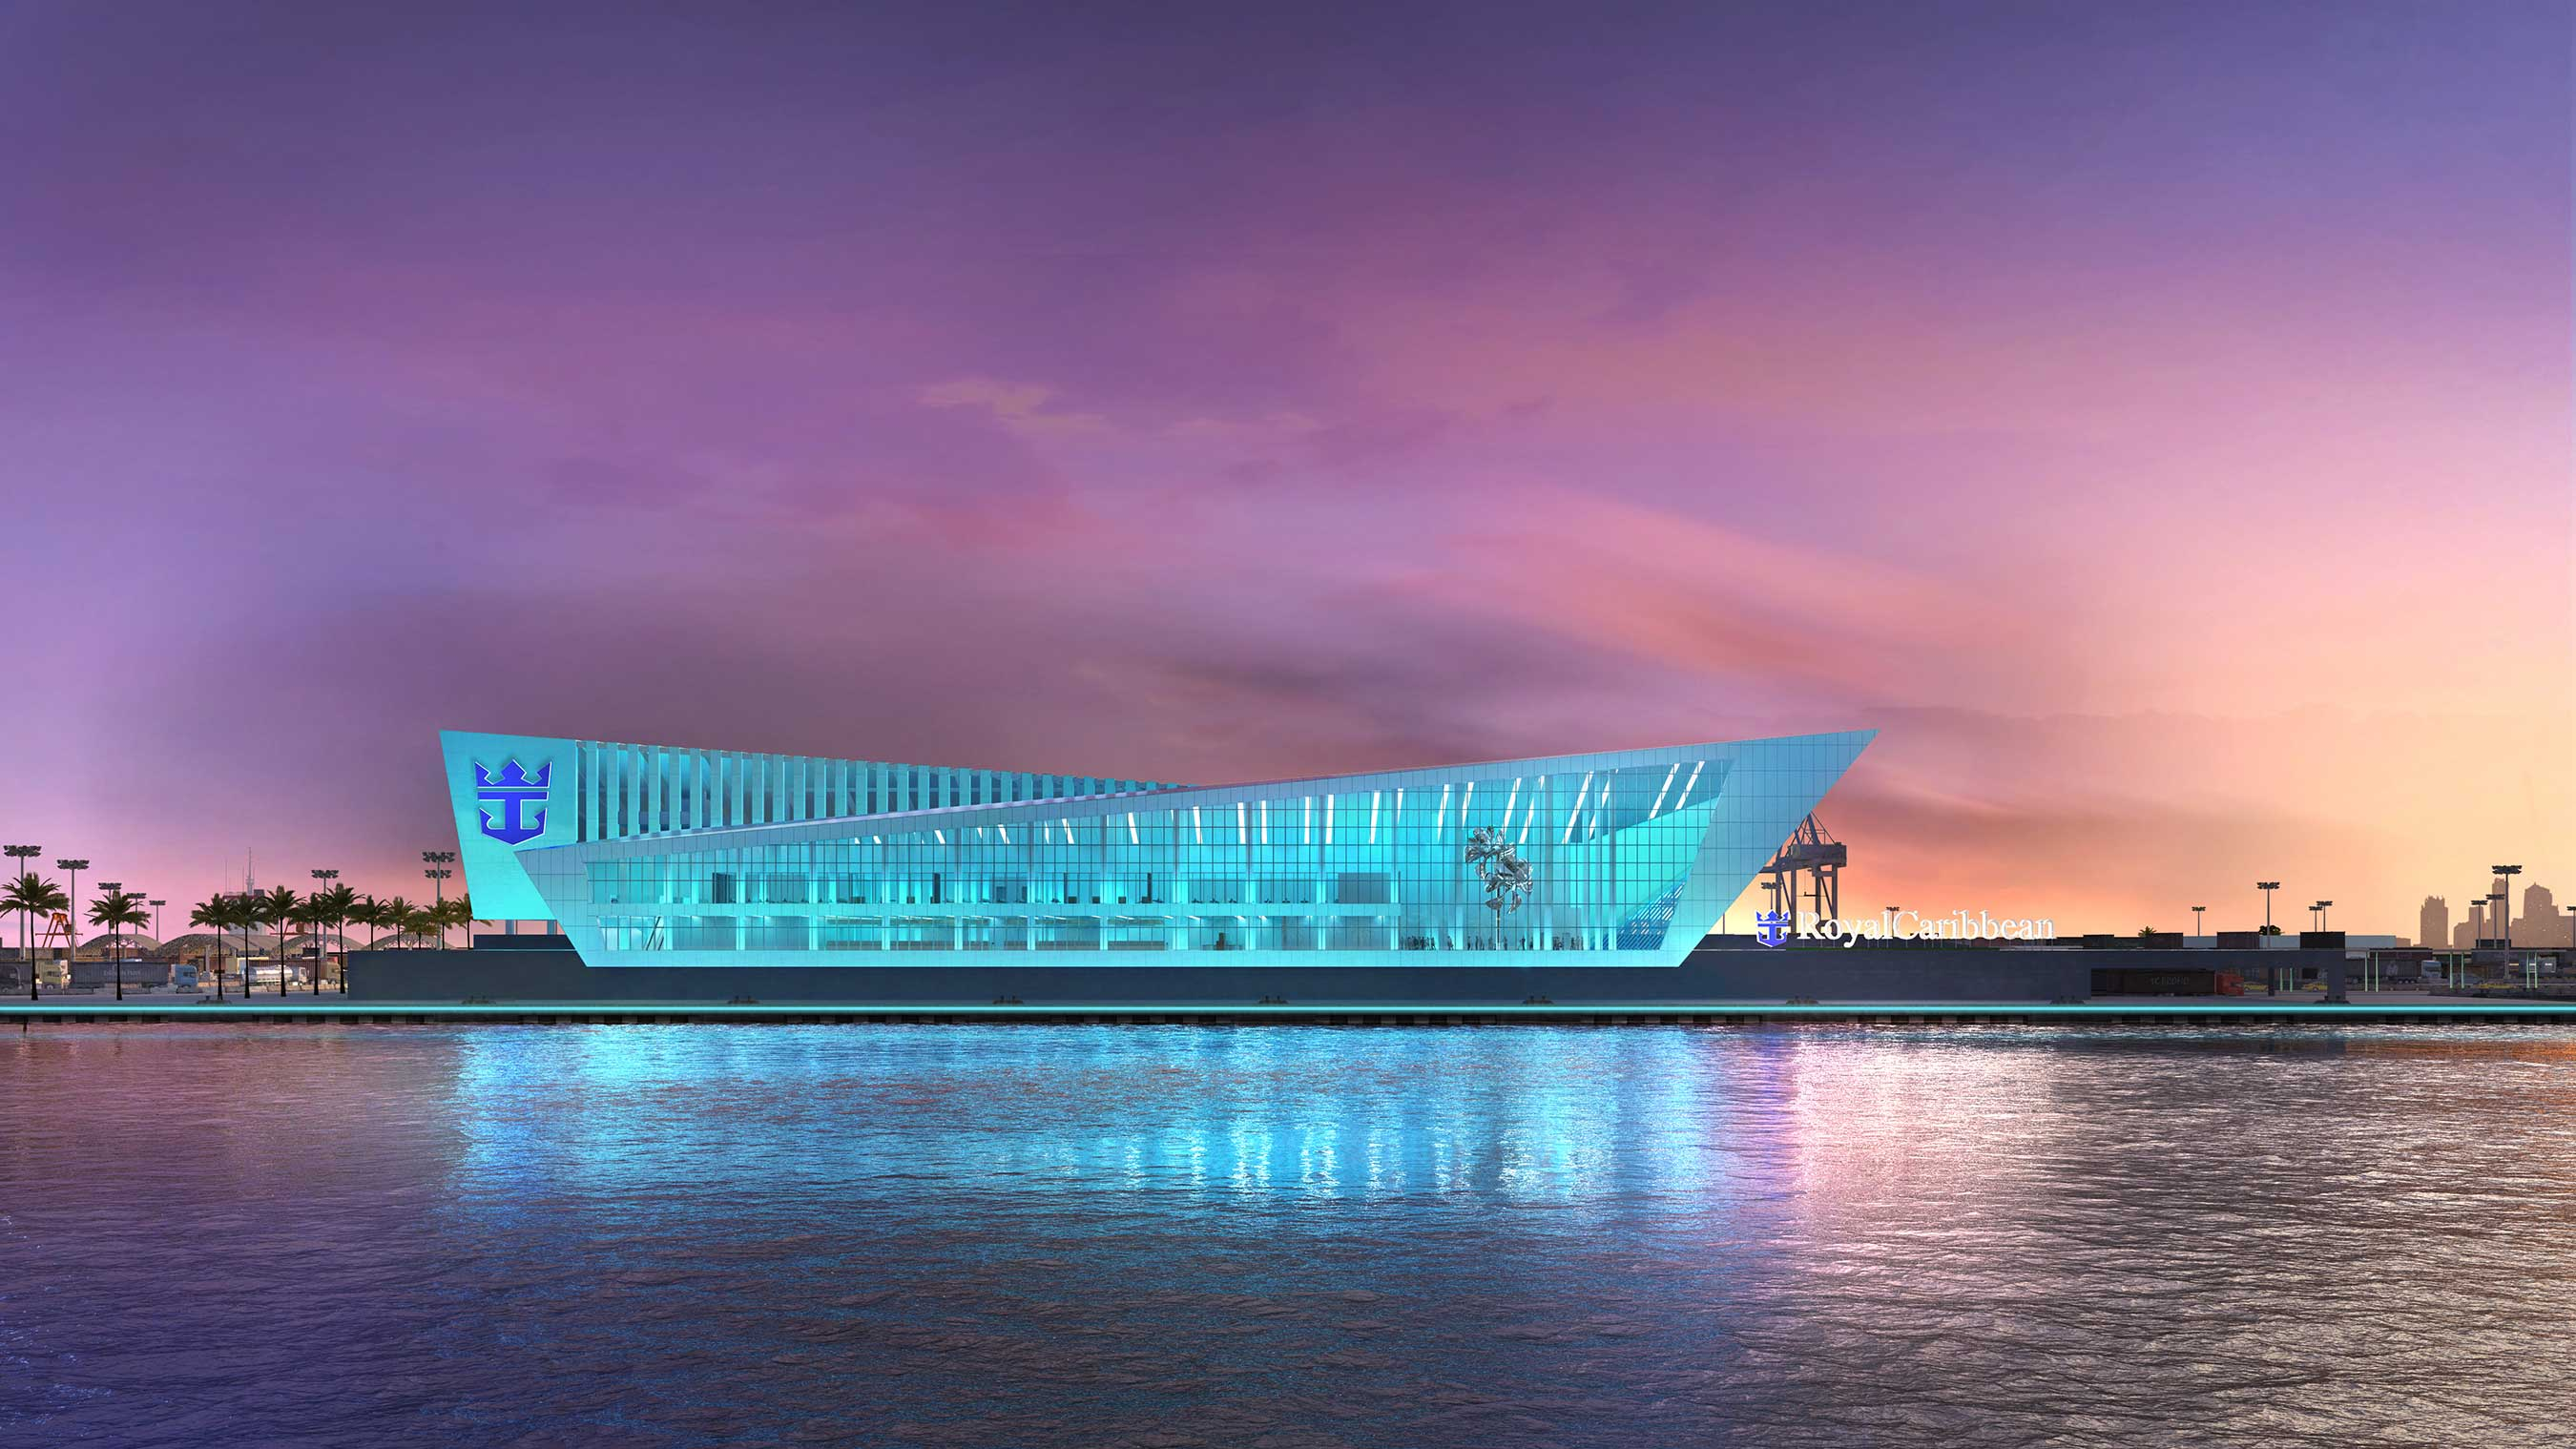 Royal Caribbean Cruises Ltd.'s (RCL) new, iconic terminal at PortMiami will be home to an Oasis-class ship. The iconic building is slated for late 2018.